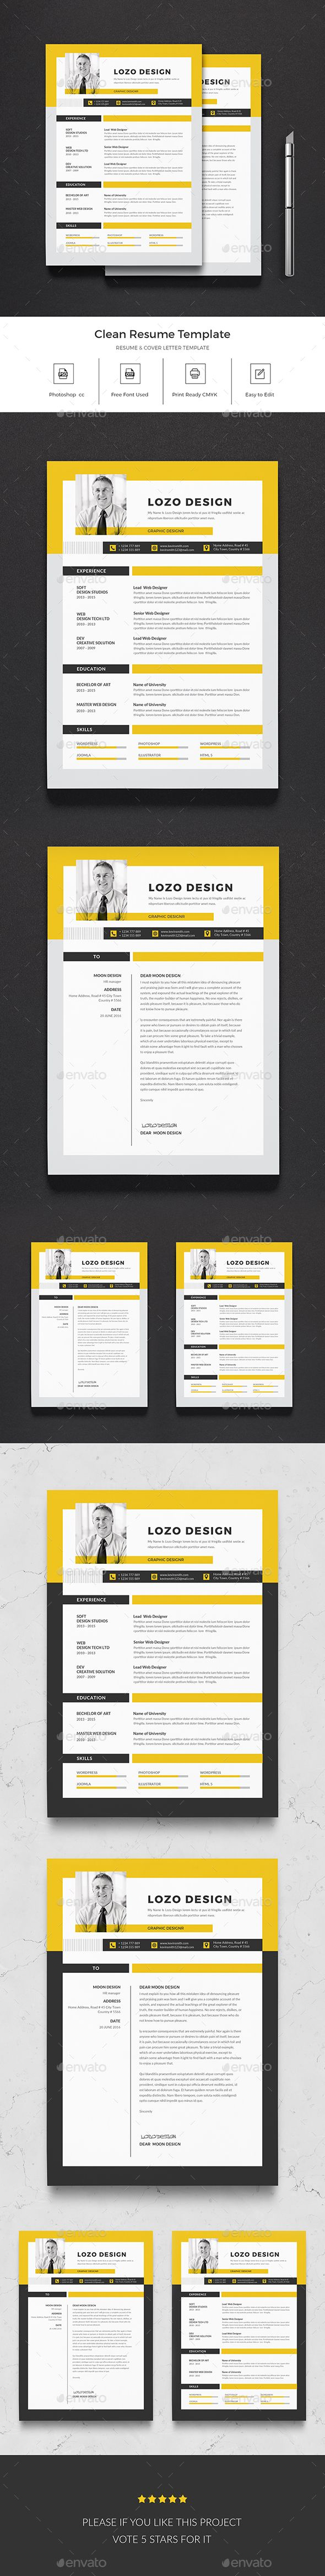 Resume 120 best Design Resumes and Documents